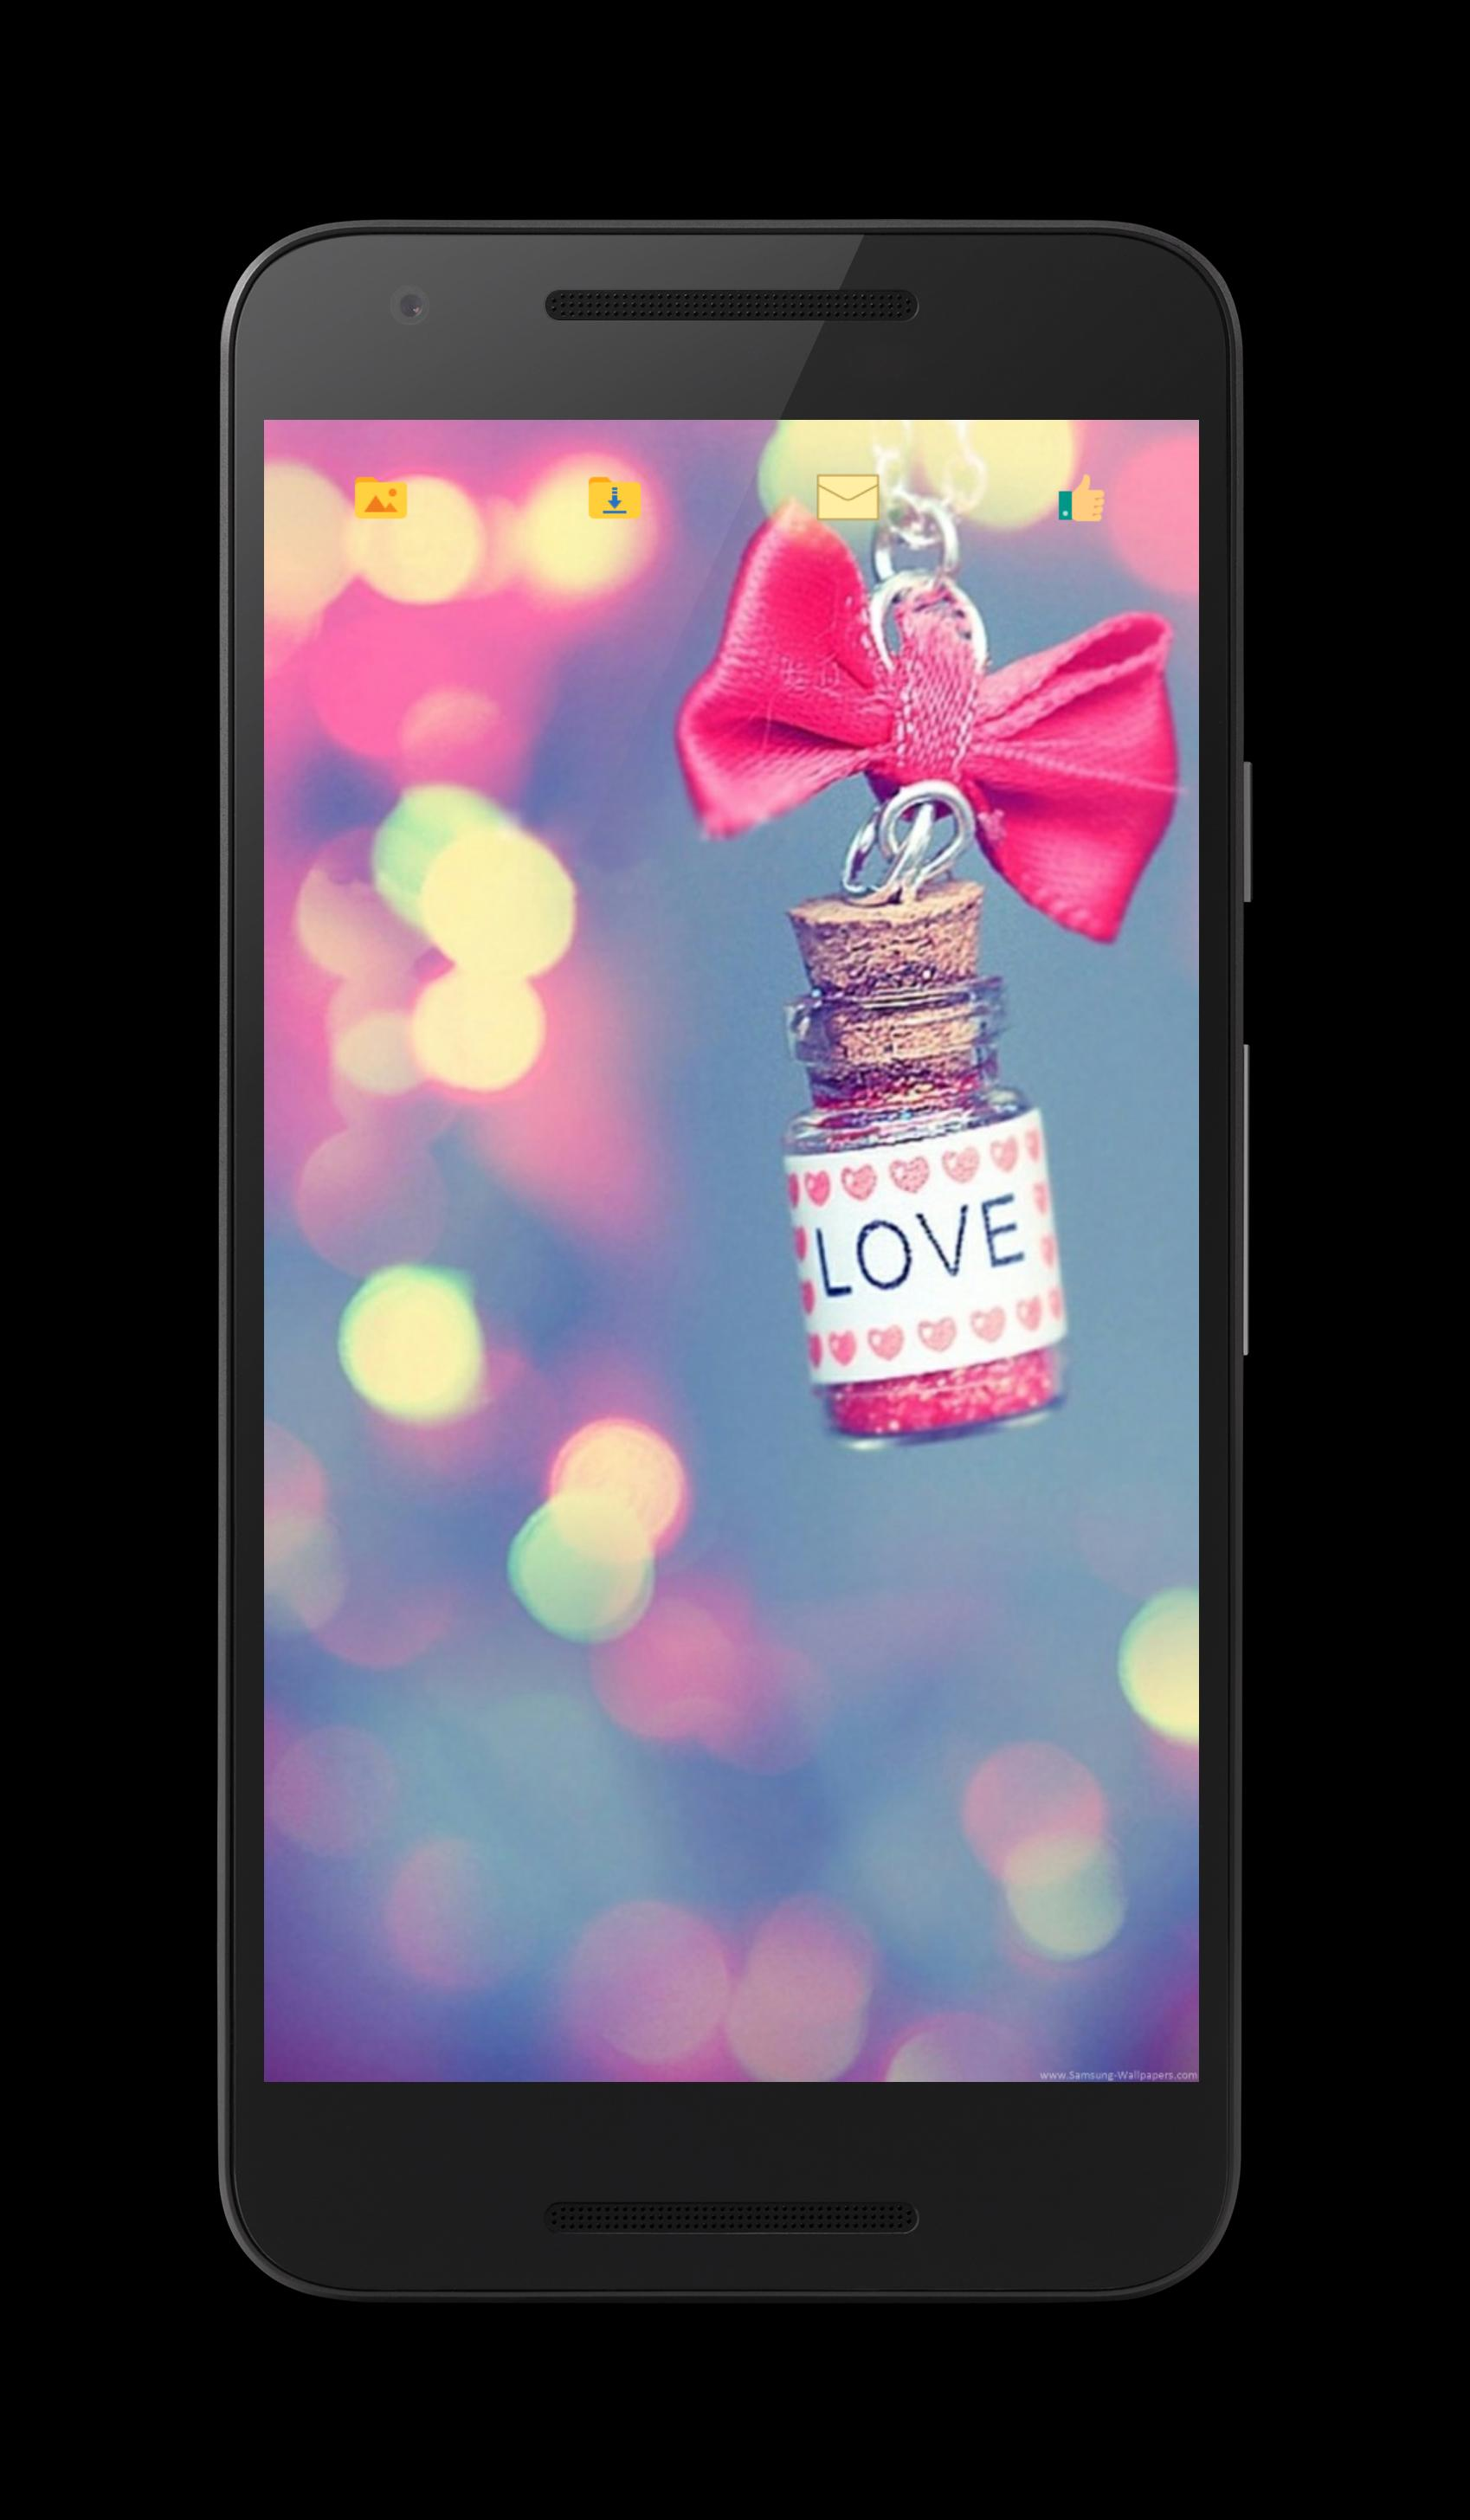 Love Wallpapers For Whatsapp For Android Apk Download